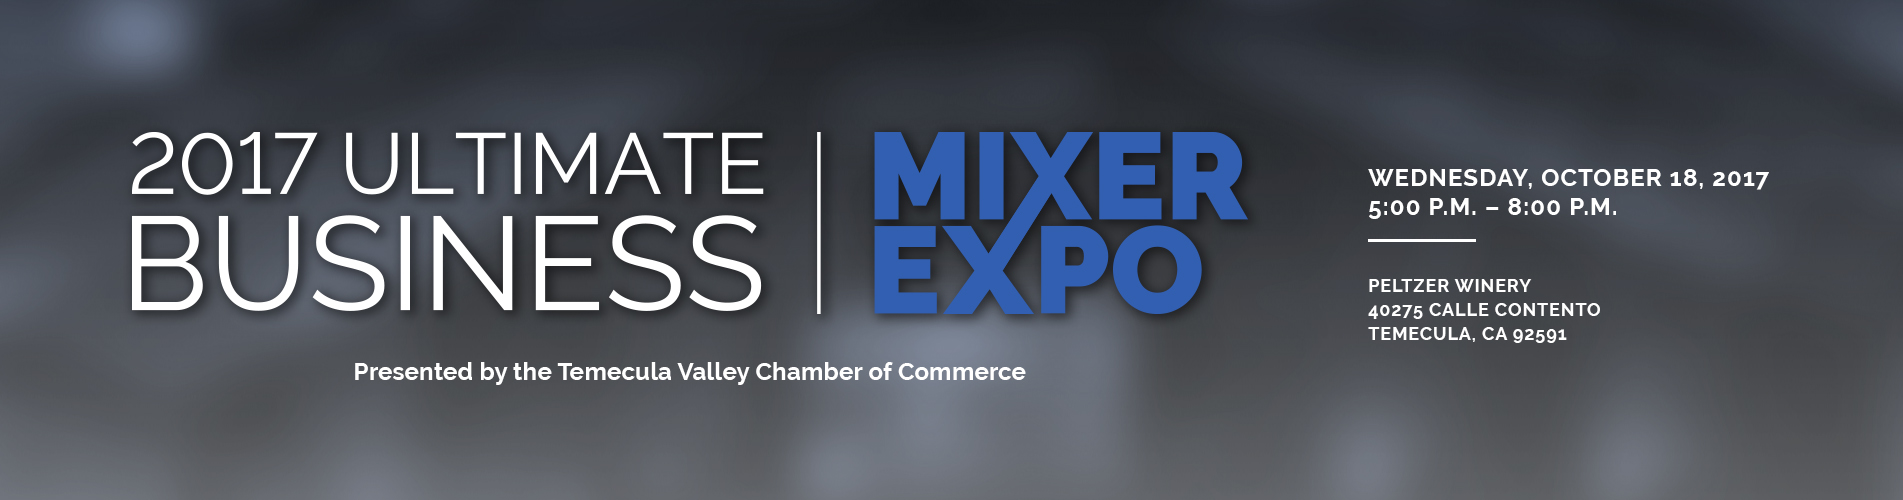 2017_Ultimate_Business_Mixer_Expo_Slider_02